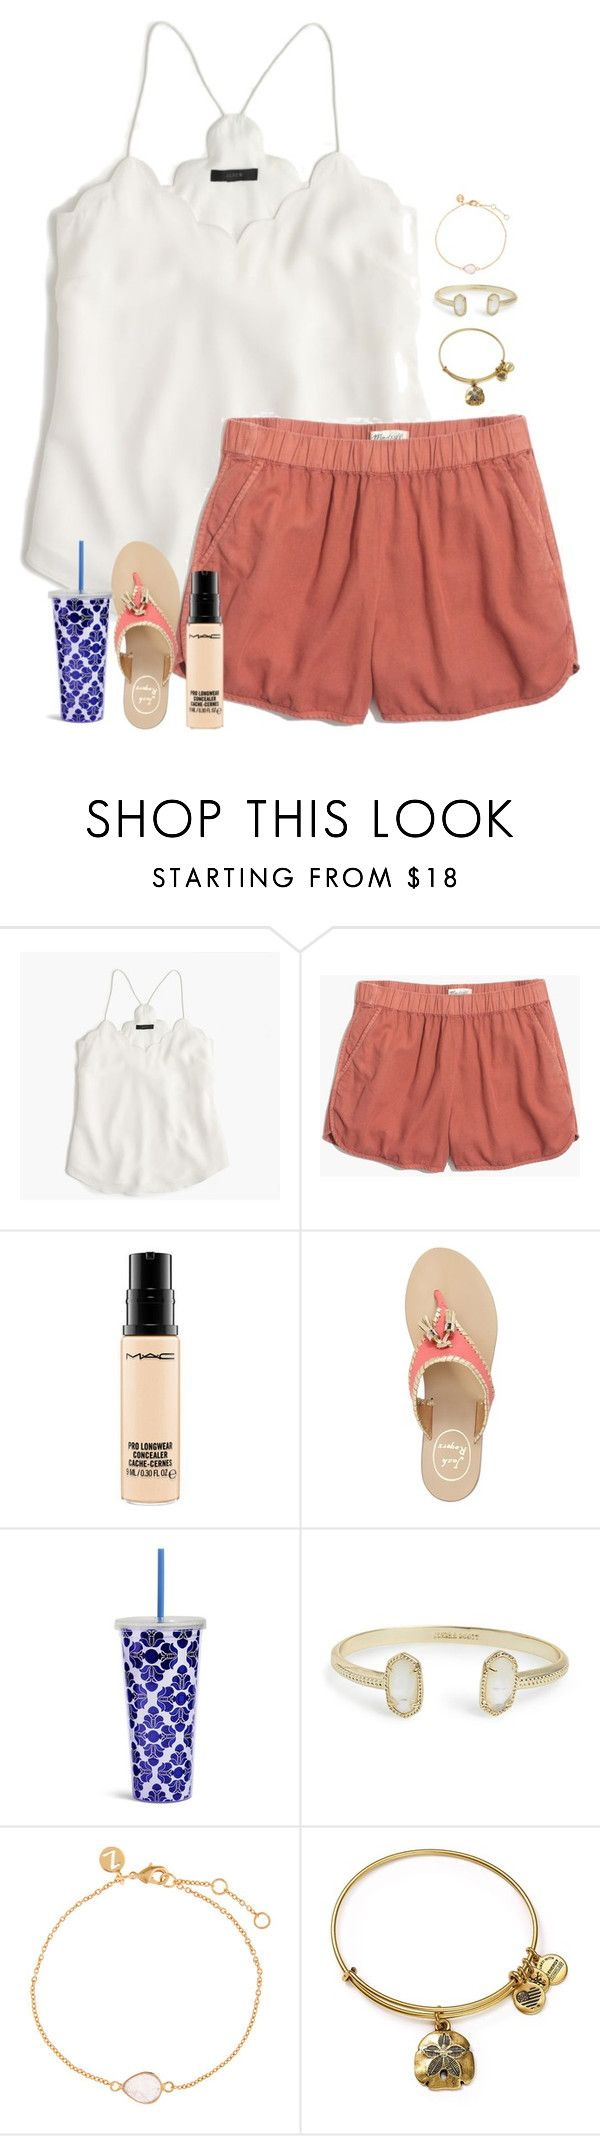 """""""Saturday """" by madelyn-abigail ❤ liked on Polyvore featuring J.Crew, Madewell, MAC Cosmetics, Jack Rogers, Vera Bradley, Kendra Scott, Accessorize and Alex and Ani"""